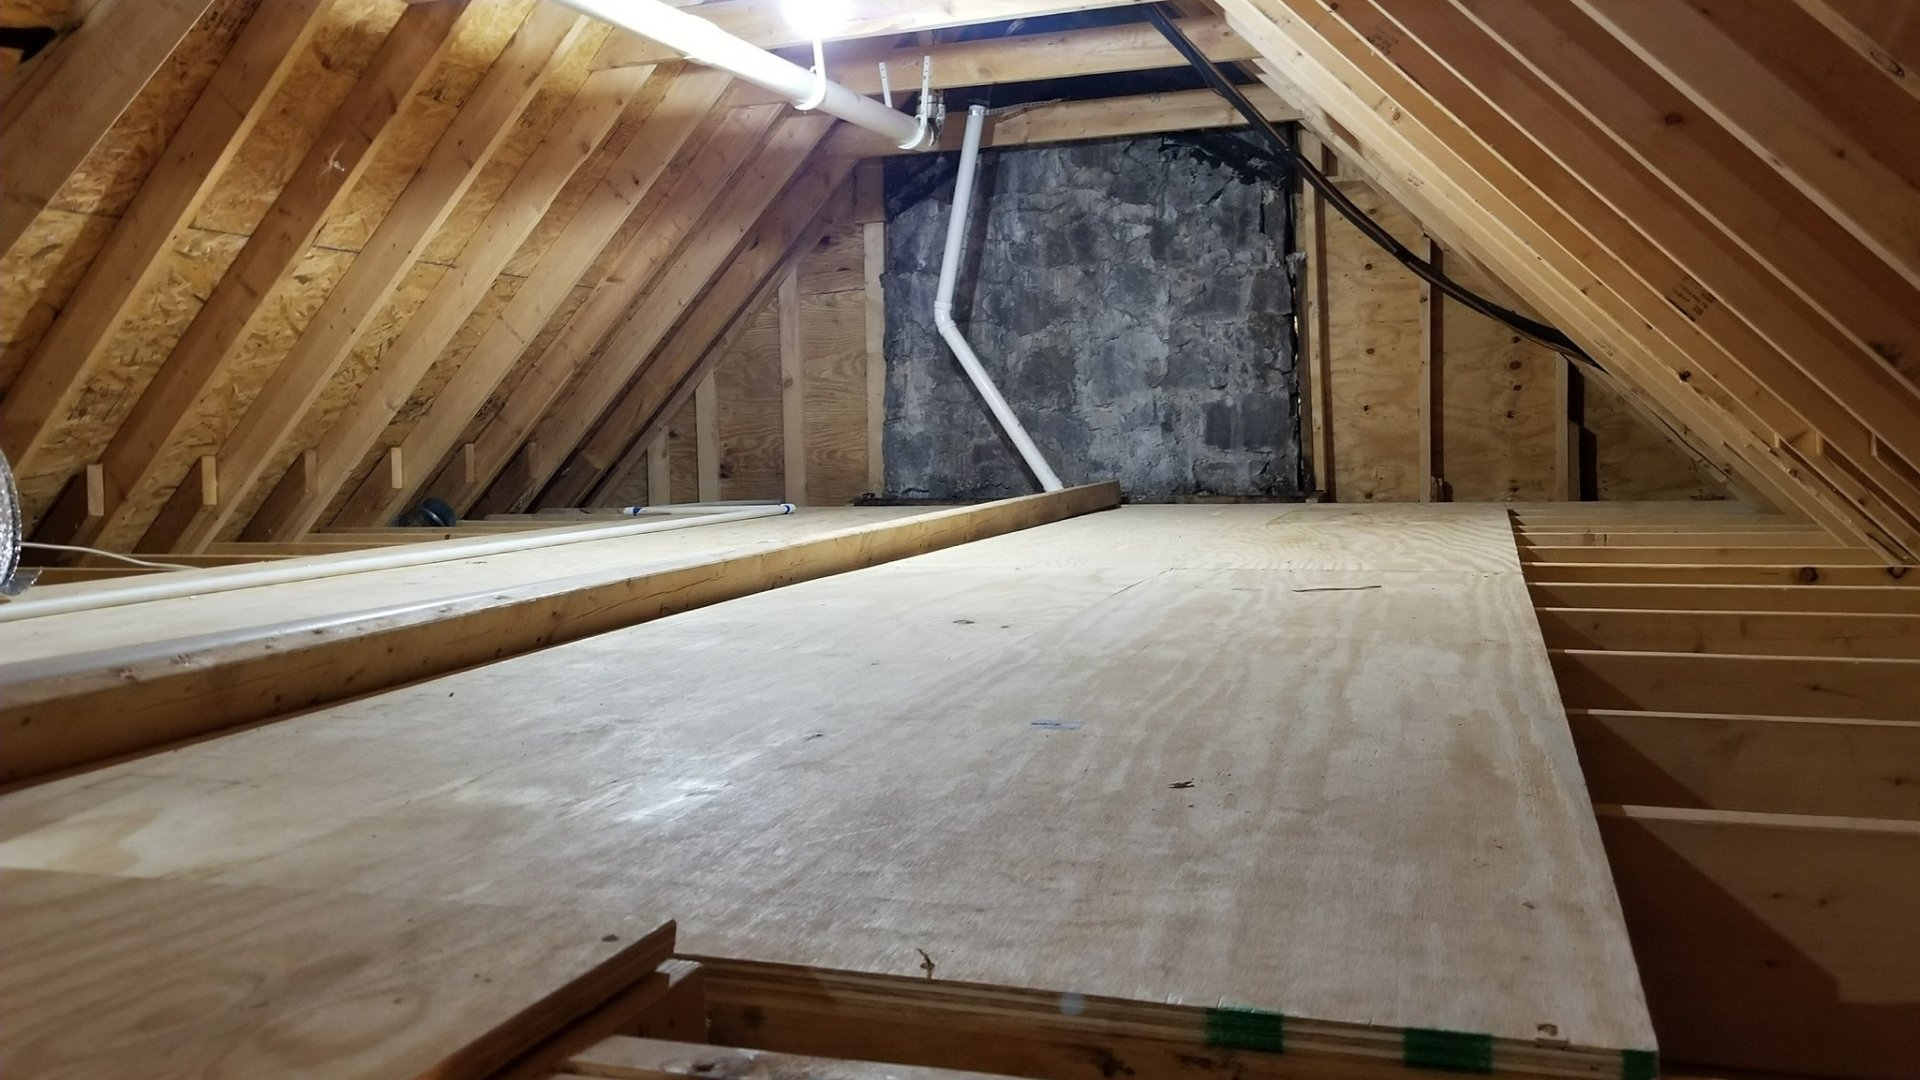 Attic Cleaned and Ready for Encapsulation